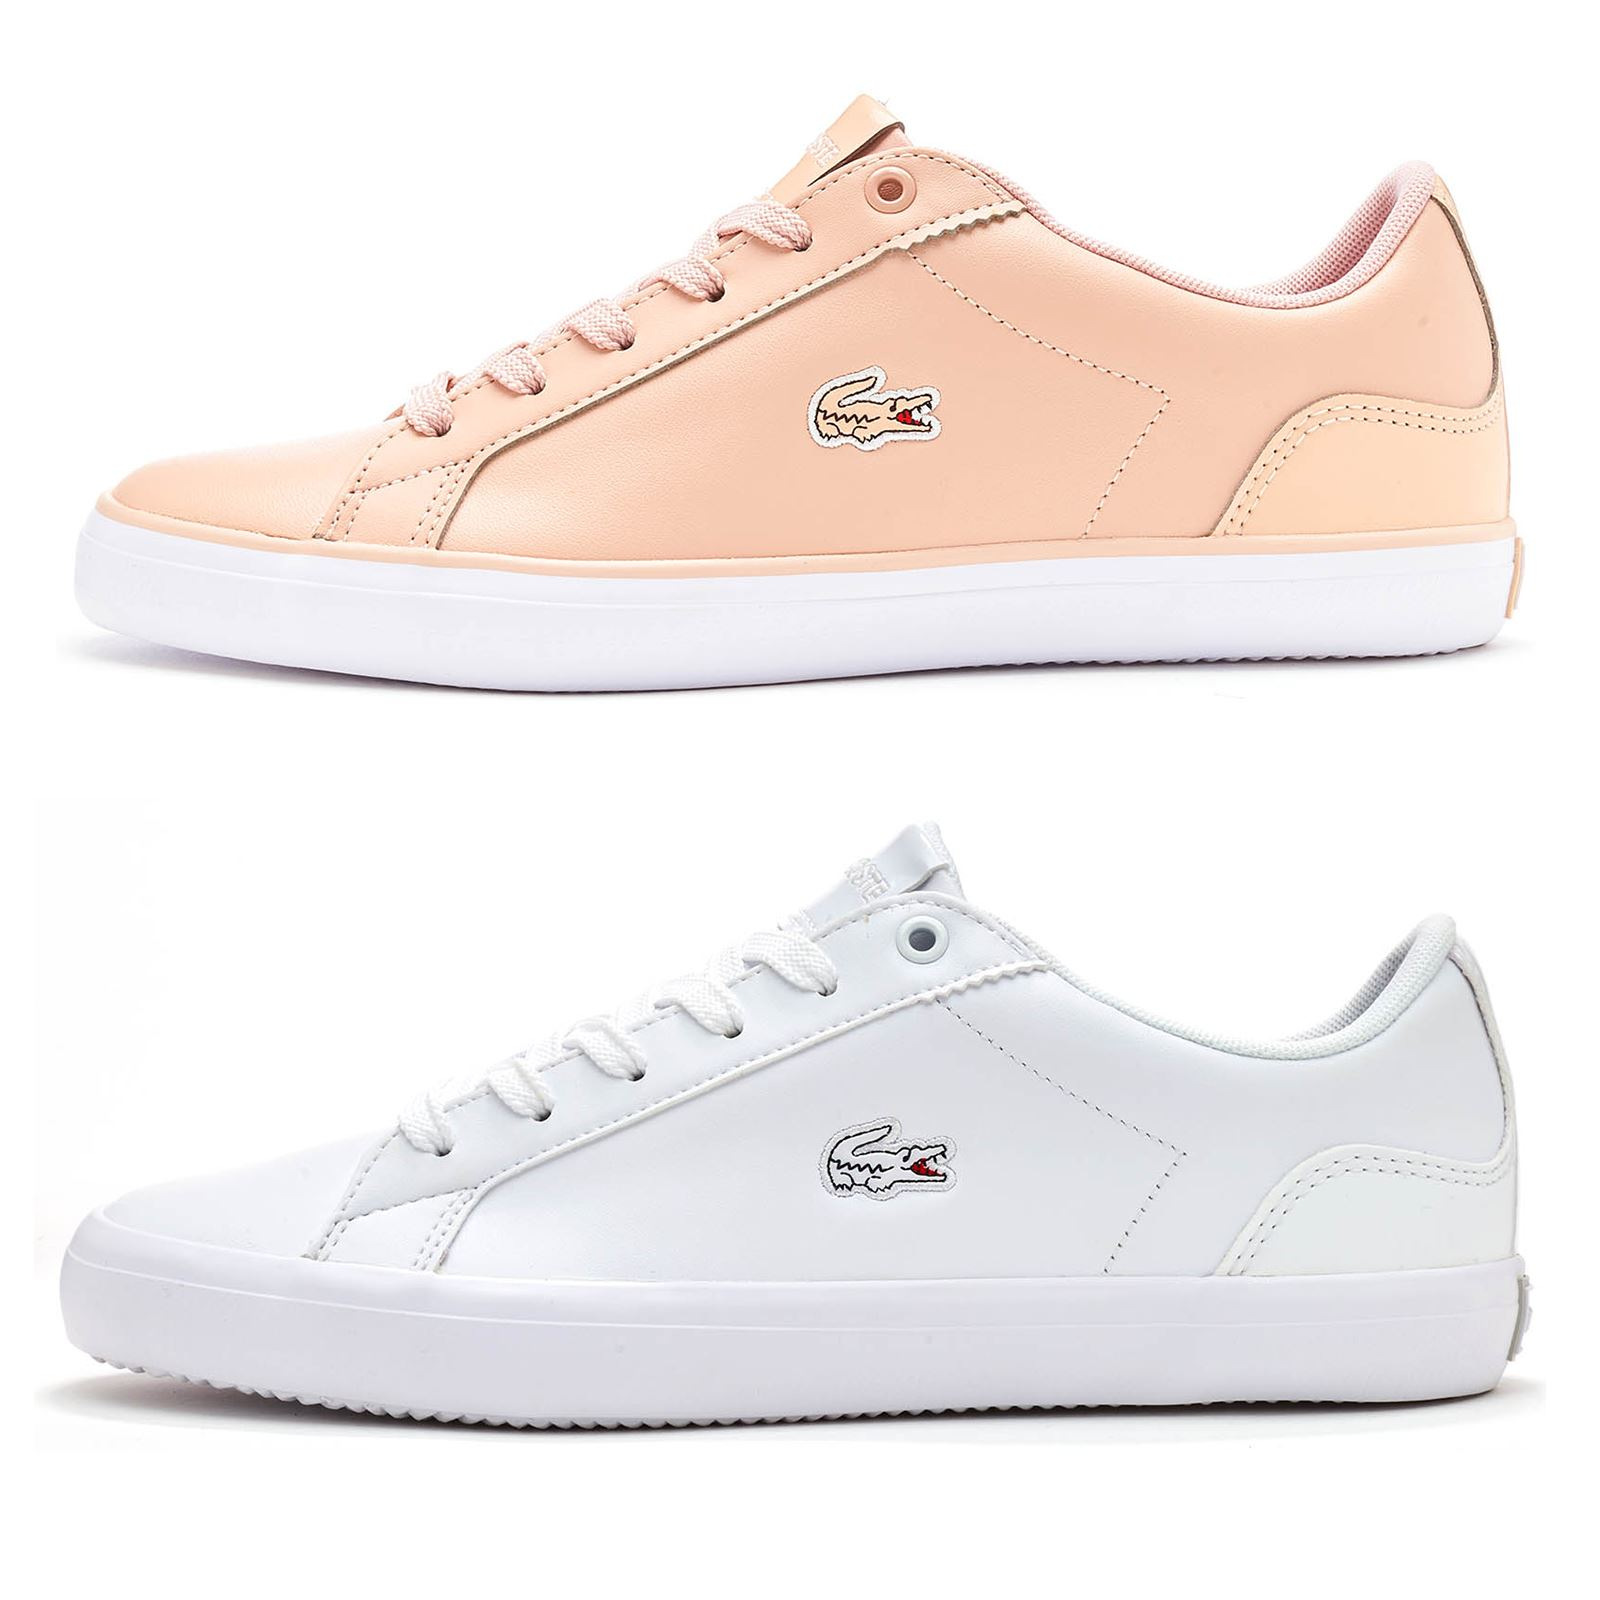 b7e1826fac3195 Details about Lacoste Lerond 118 1 QSP Women Leather Trainers in White    Pink 735CAW0093